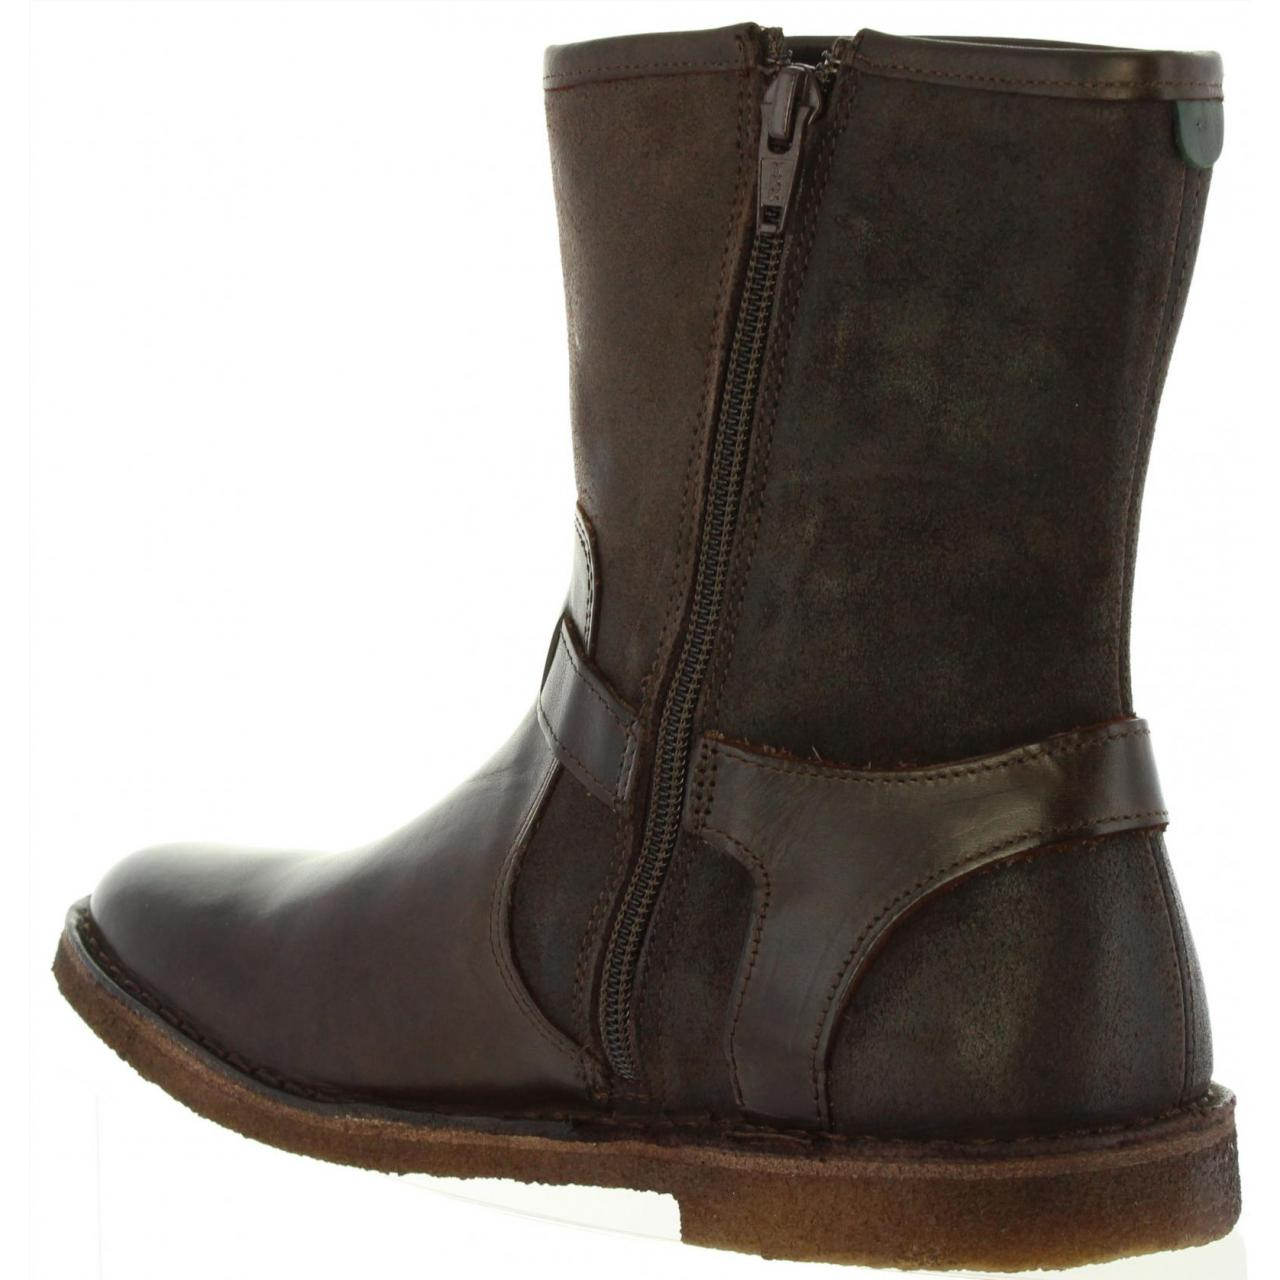 Botas Kickers De Piel Marrón - 577411-50 CREEK 92 MARRON